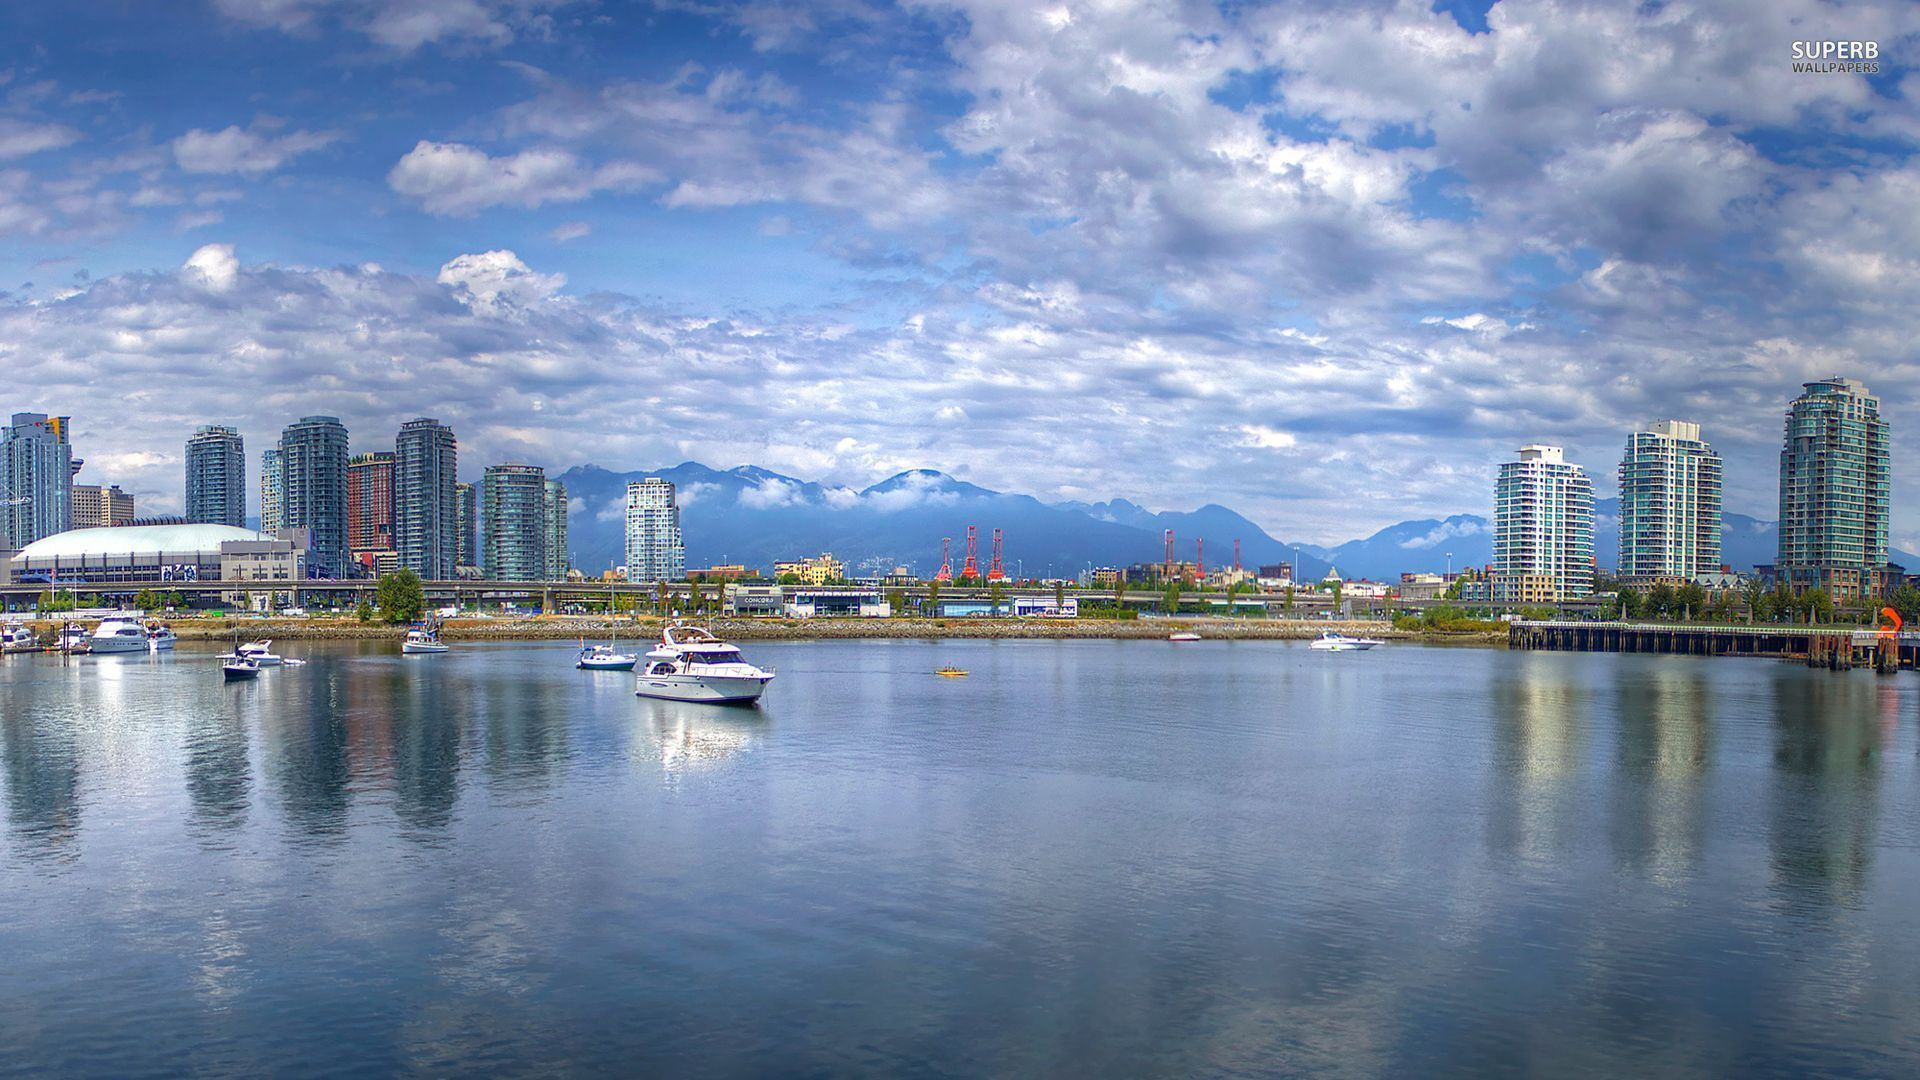 Vancouver 194846 Full HD Widescreen wallpapers for desktop download 1920x1080